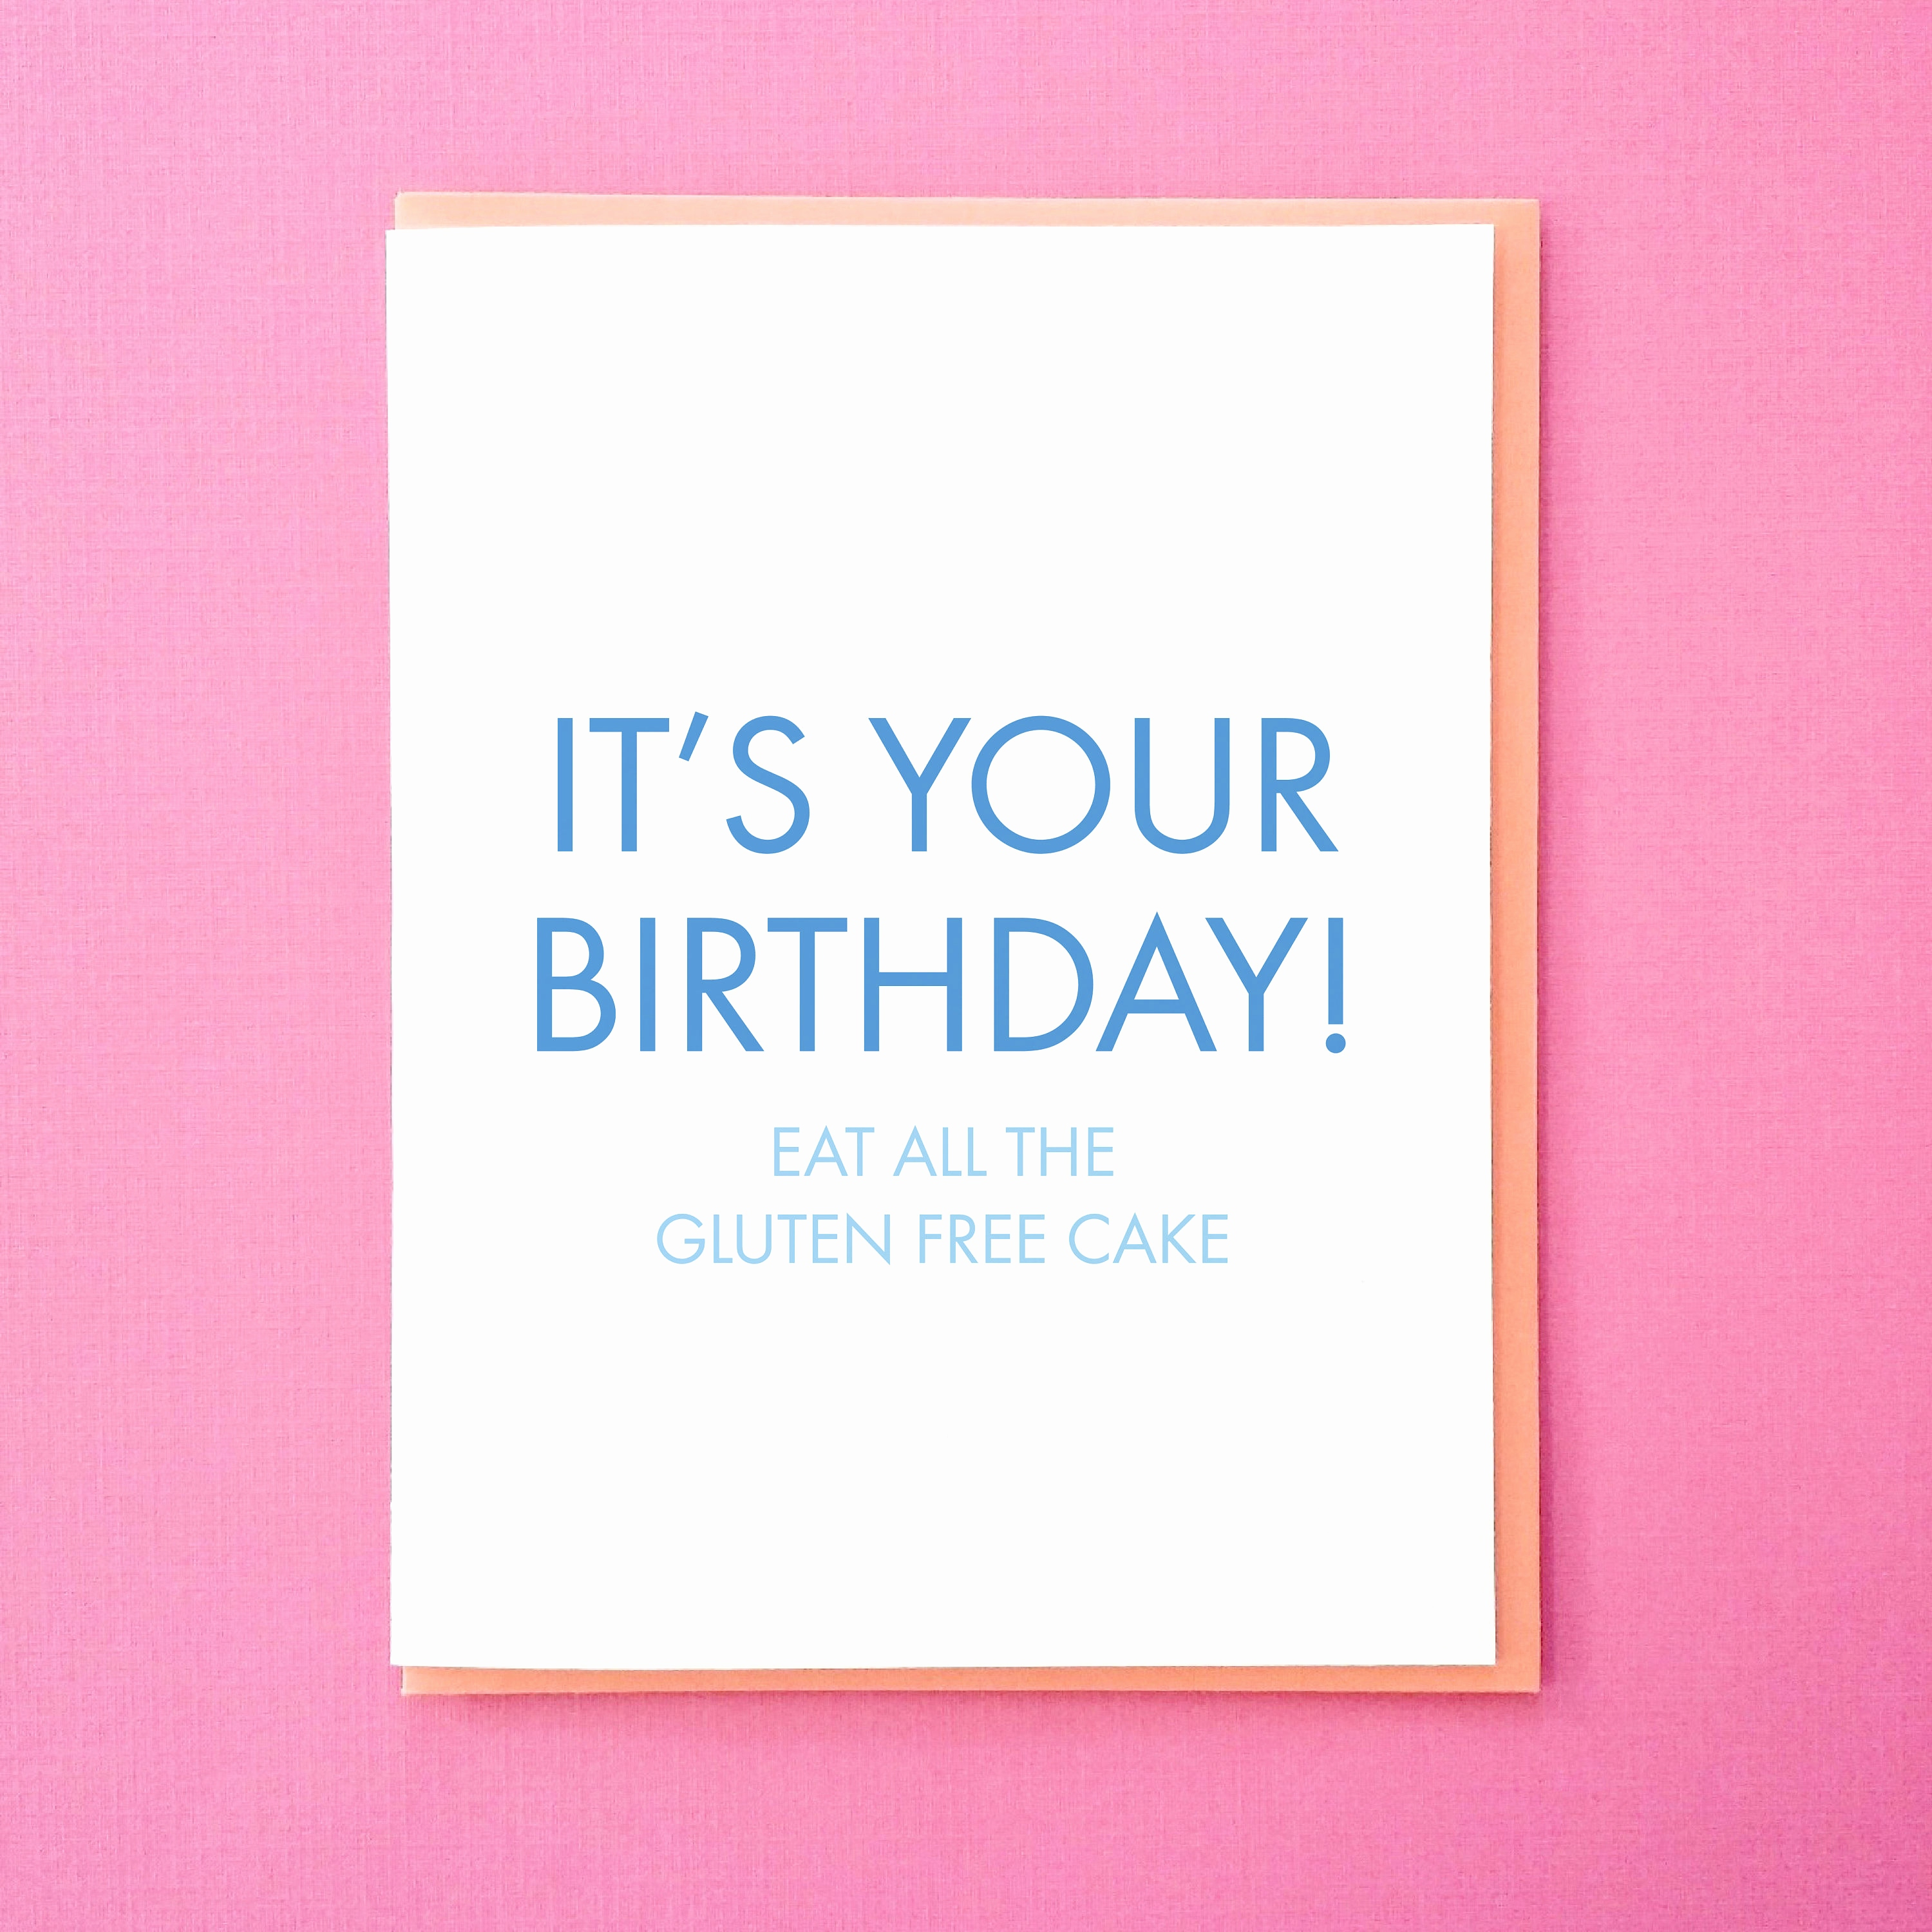 free printable birthday card inserts ; birthday-card-with-photo-insert-free-beautiful-eat-all-the-gluten-free-cake-funny-birthday-card-cake-card-of-birthday-card-with-photo-insert-free